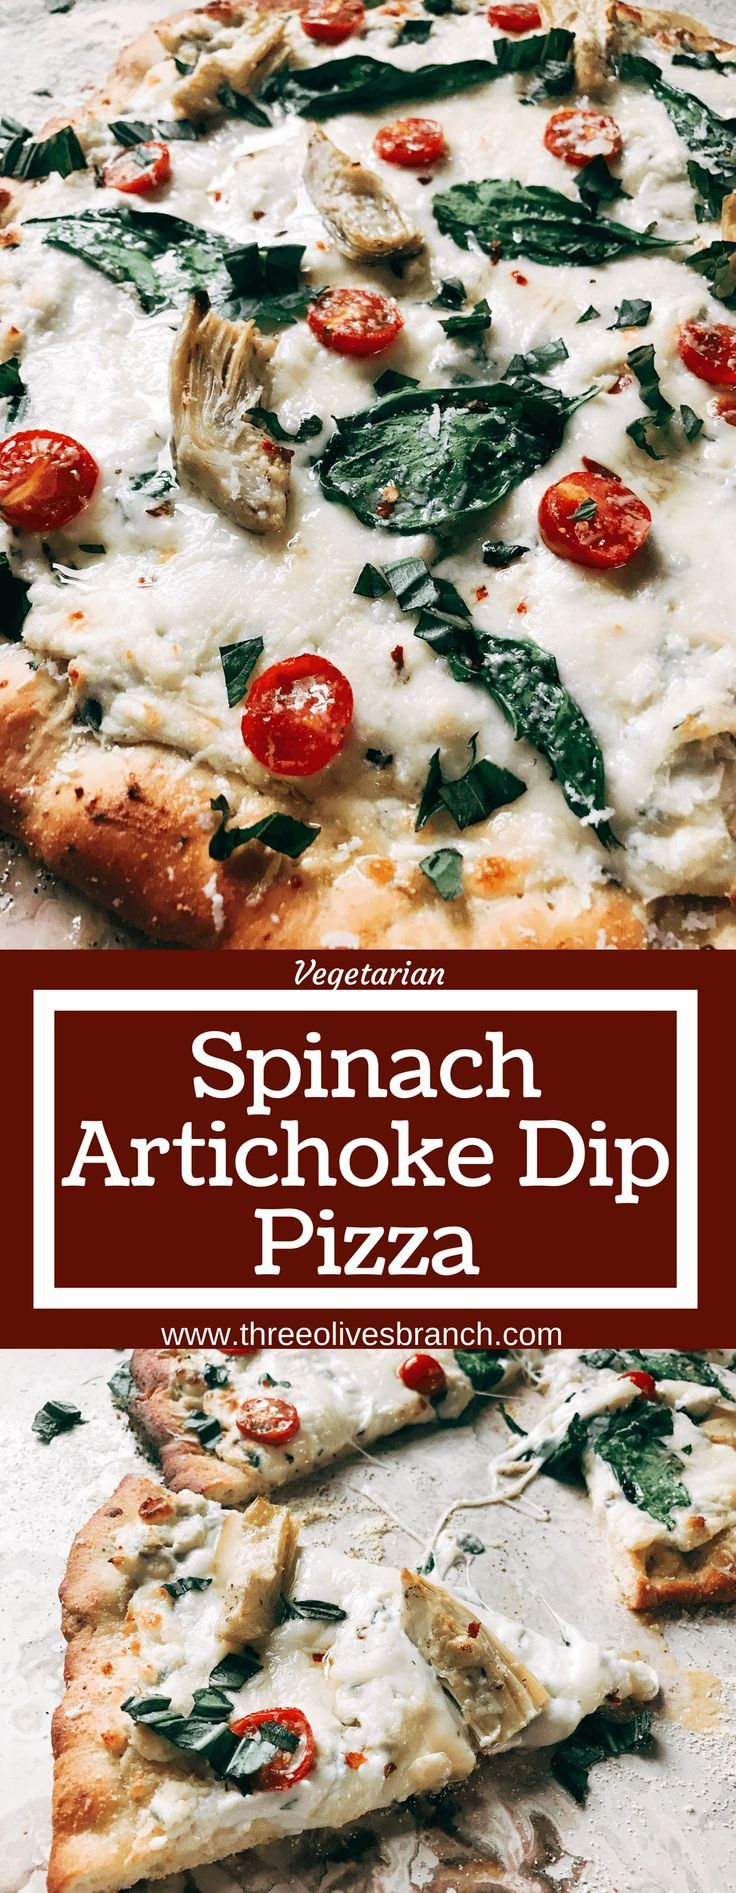 Perfect for dinner parties and fun meals, this pizza is based on the classic spinach artichoke dip! Spinach, artichoke hearts, Parmesan, cream cheese, garlic, and more form a dip as the sauce of this pizza with additional veggies like tomatoes or your favorite meats as the toppings. Try it out with our Parmesan Black Pepper or Rosemary Garlic Pizza Doughs. Make the dough in advance for a faster meal! Freezes well, kid friendly, vegetarian, and delicious! Spinach Artichoke Dip Pizza | Three…